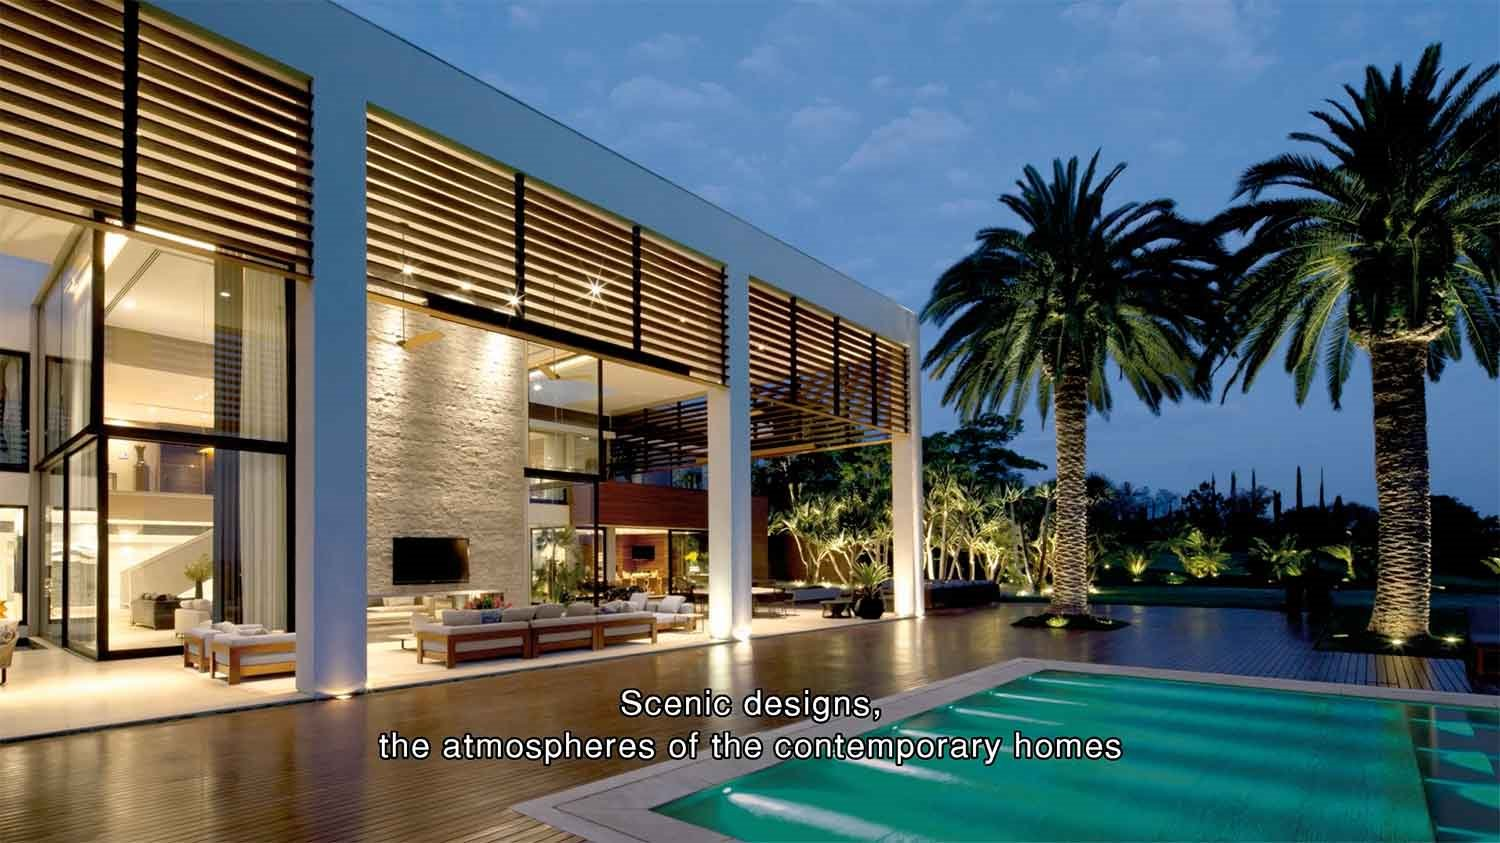 proyecto-en-Sao-Paulo-documental-Minotti